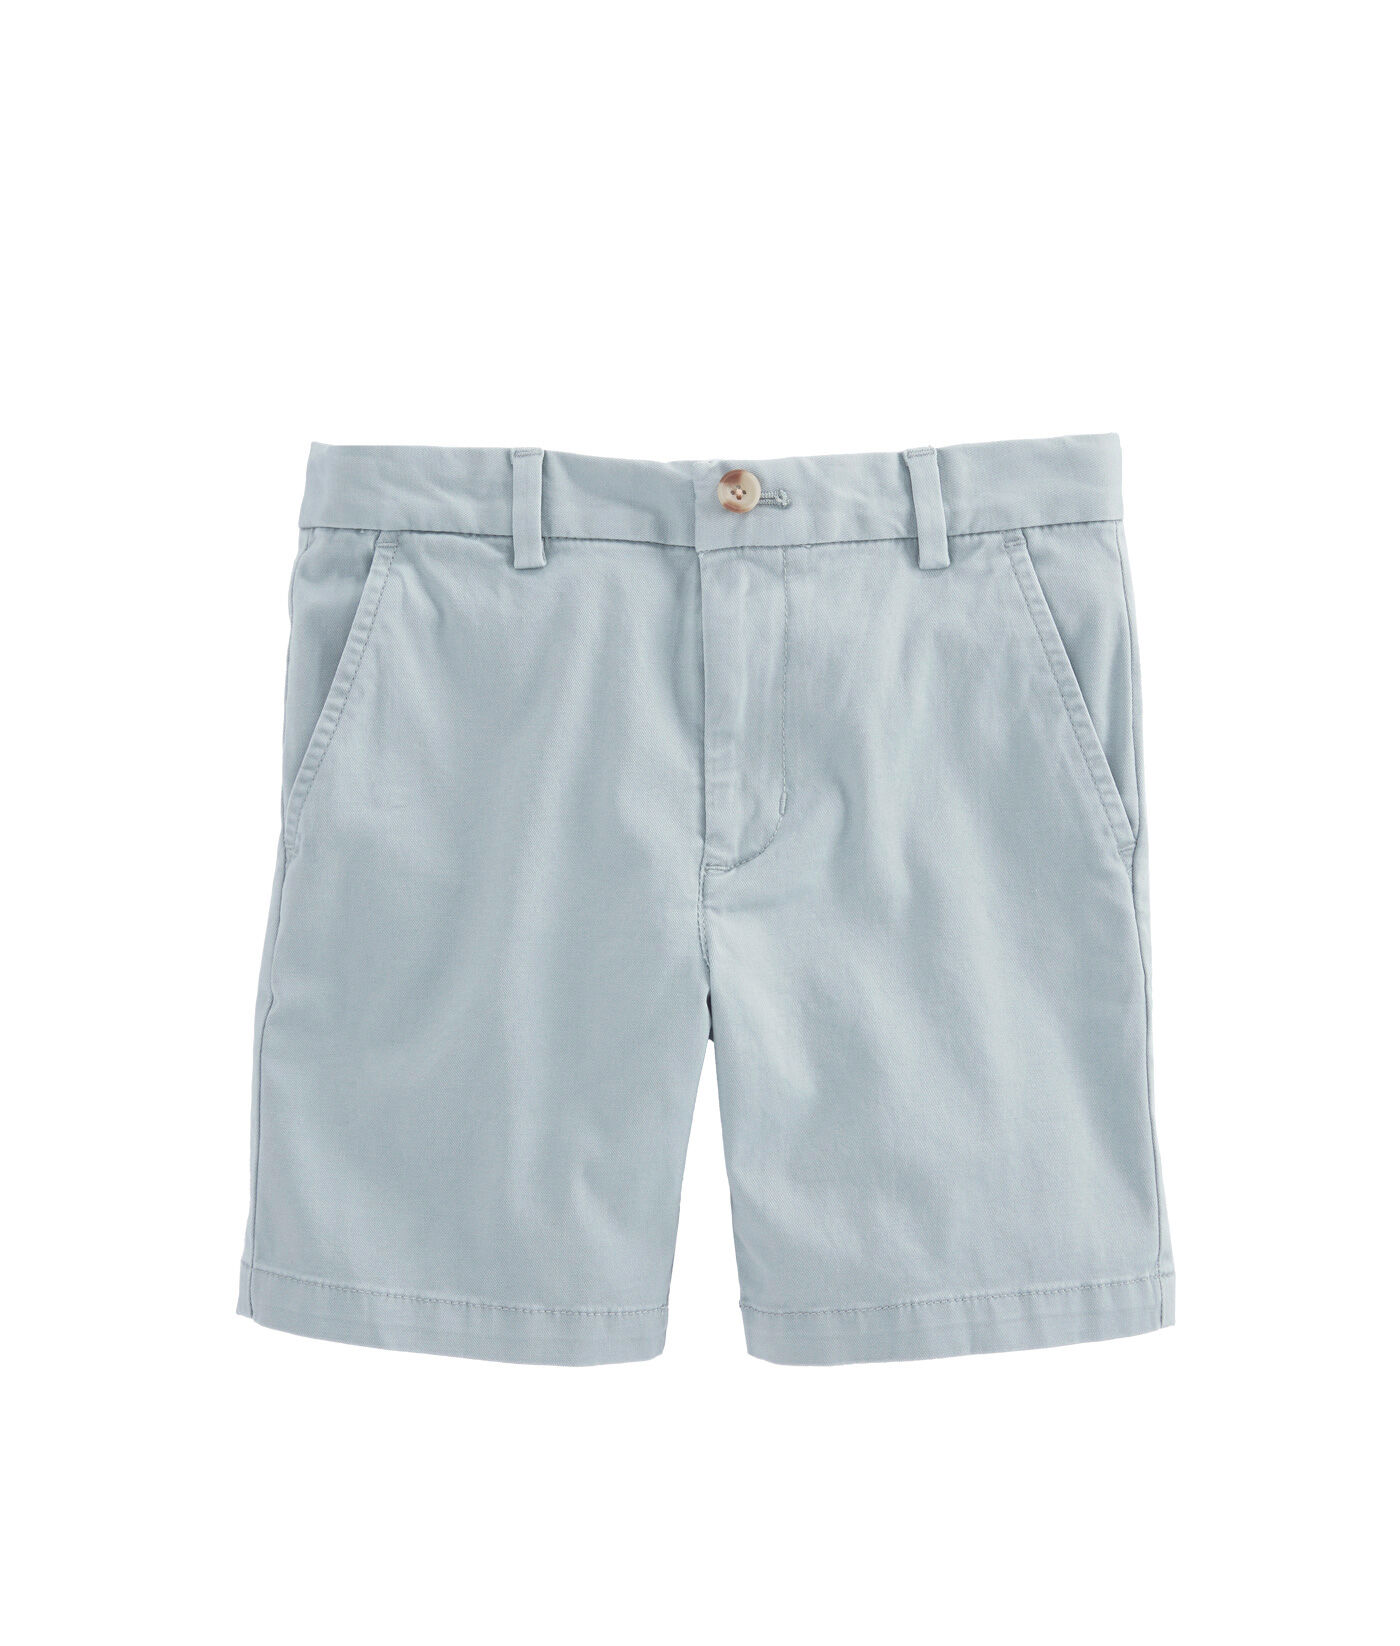 Boys stretch breaker shorts also  and pants at vineyard vines rh vineyardvines